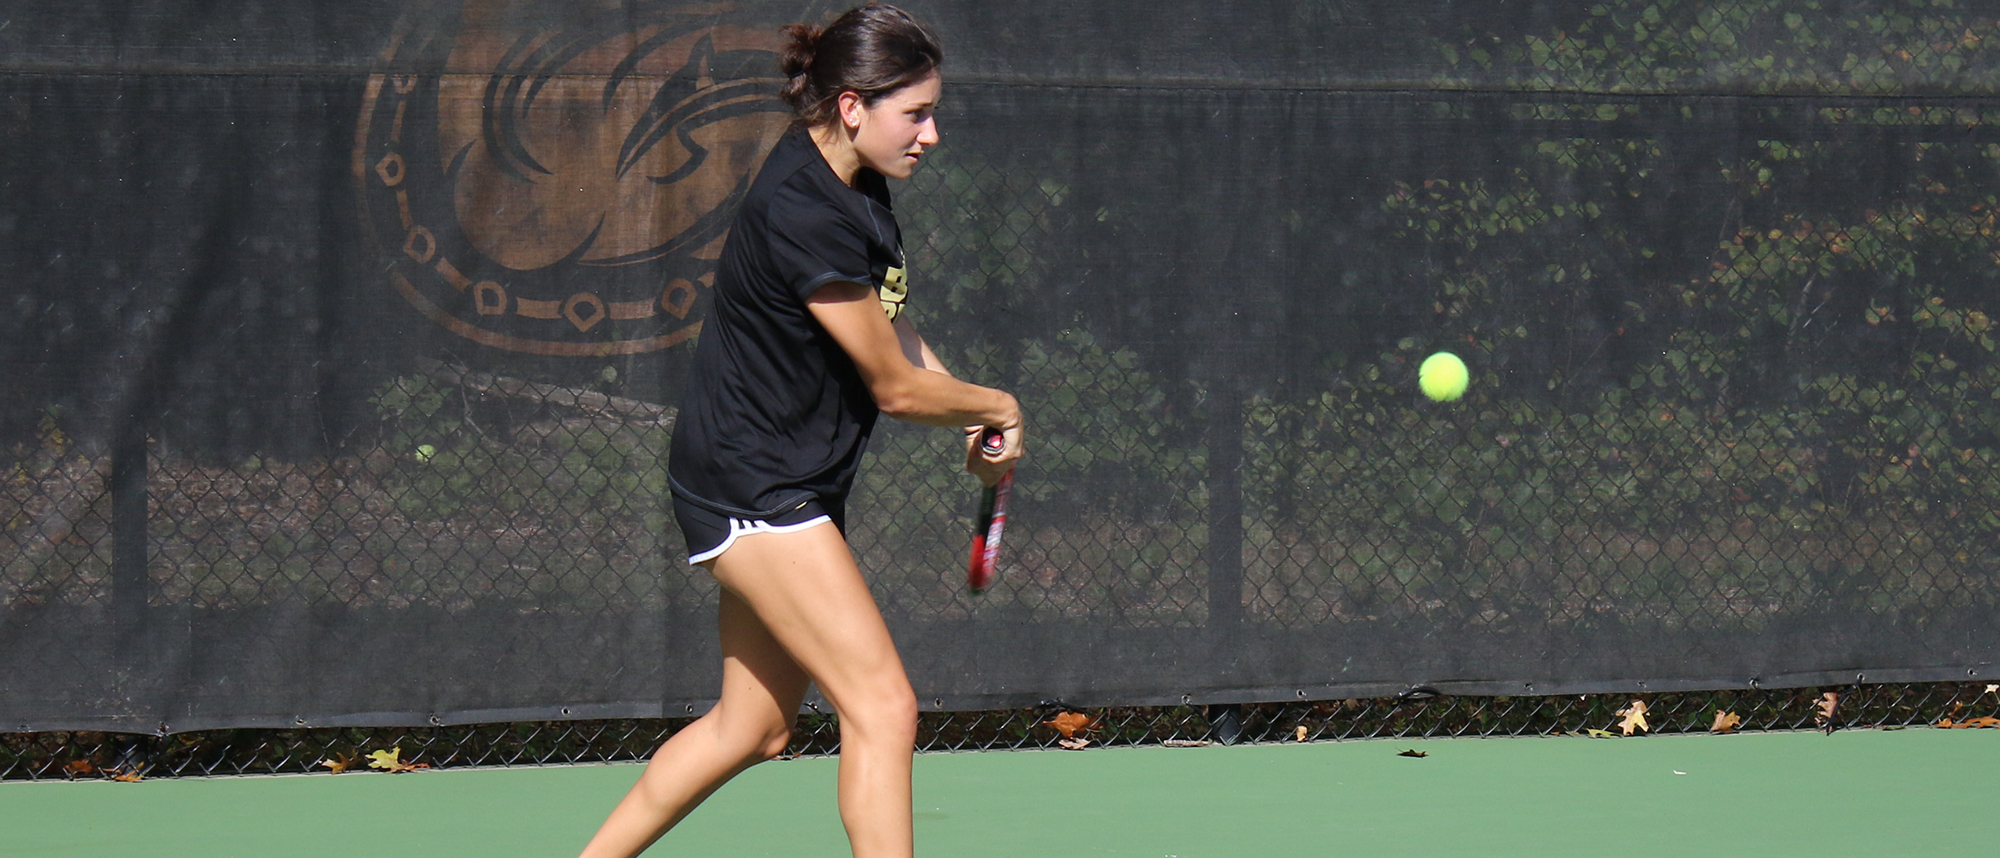 Bulldogs beat Sacred Heart, 6-1, Sunday